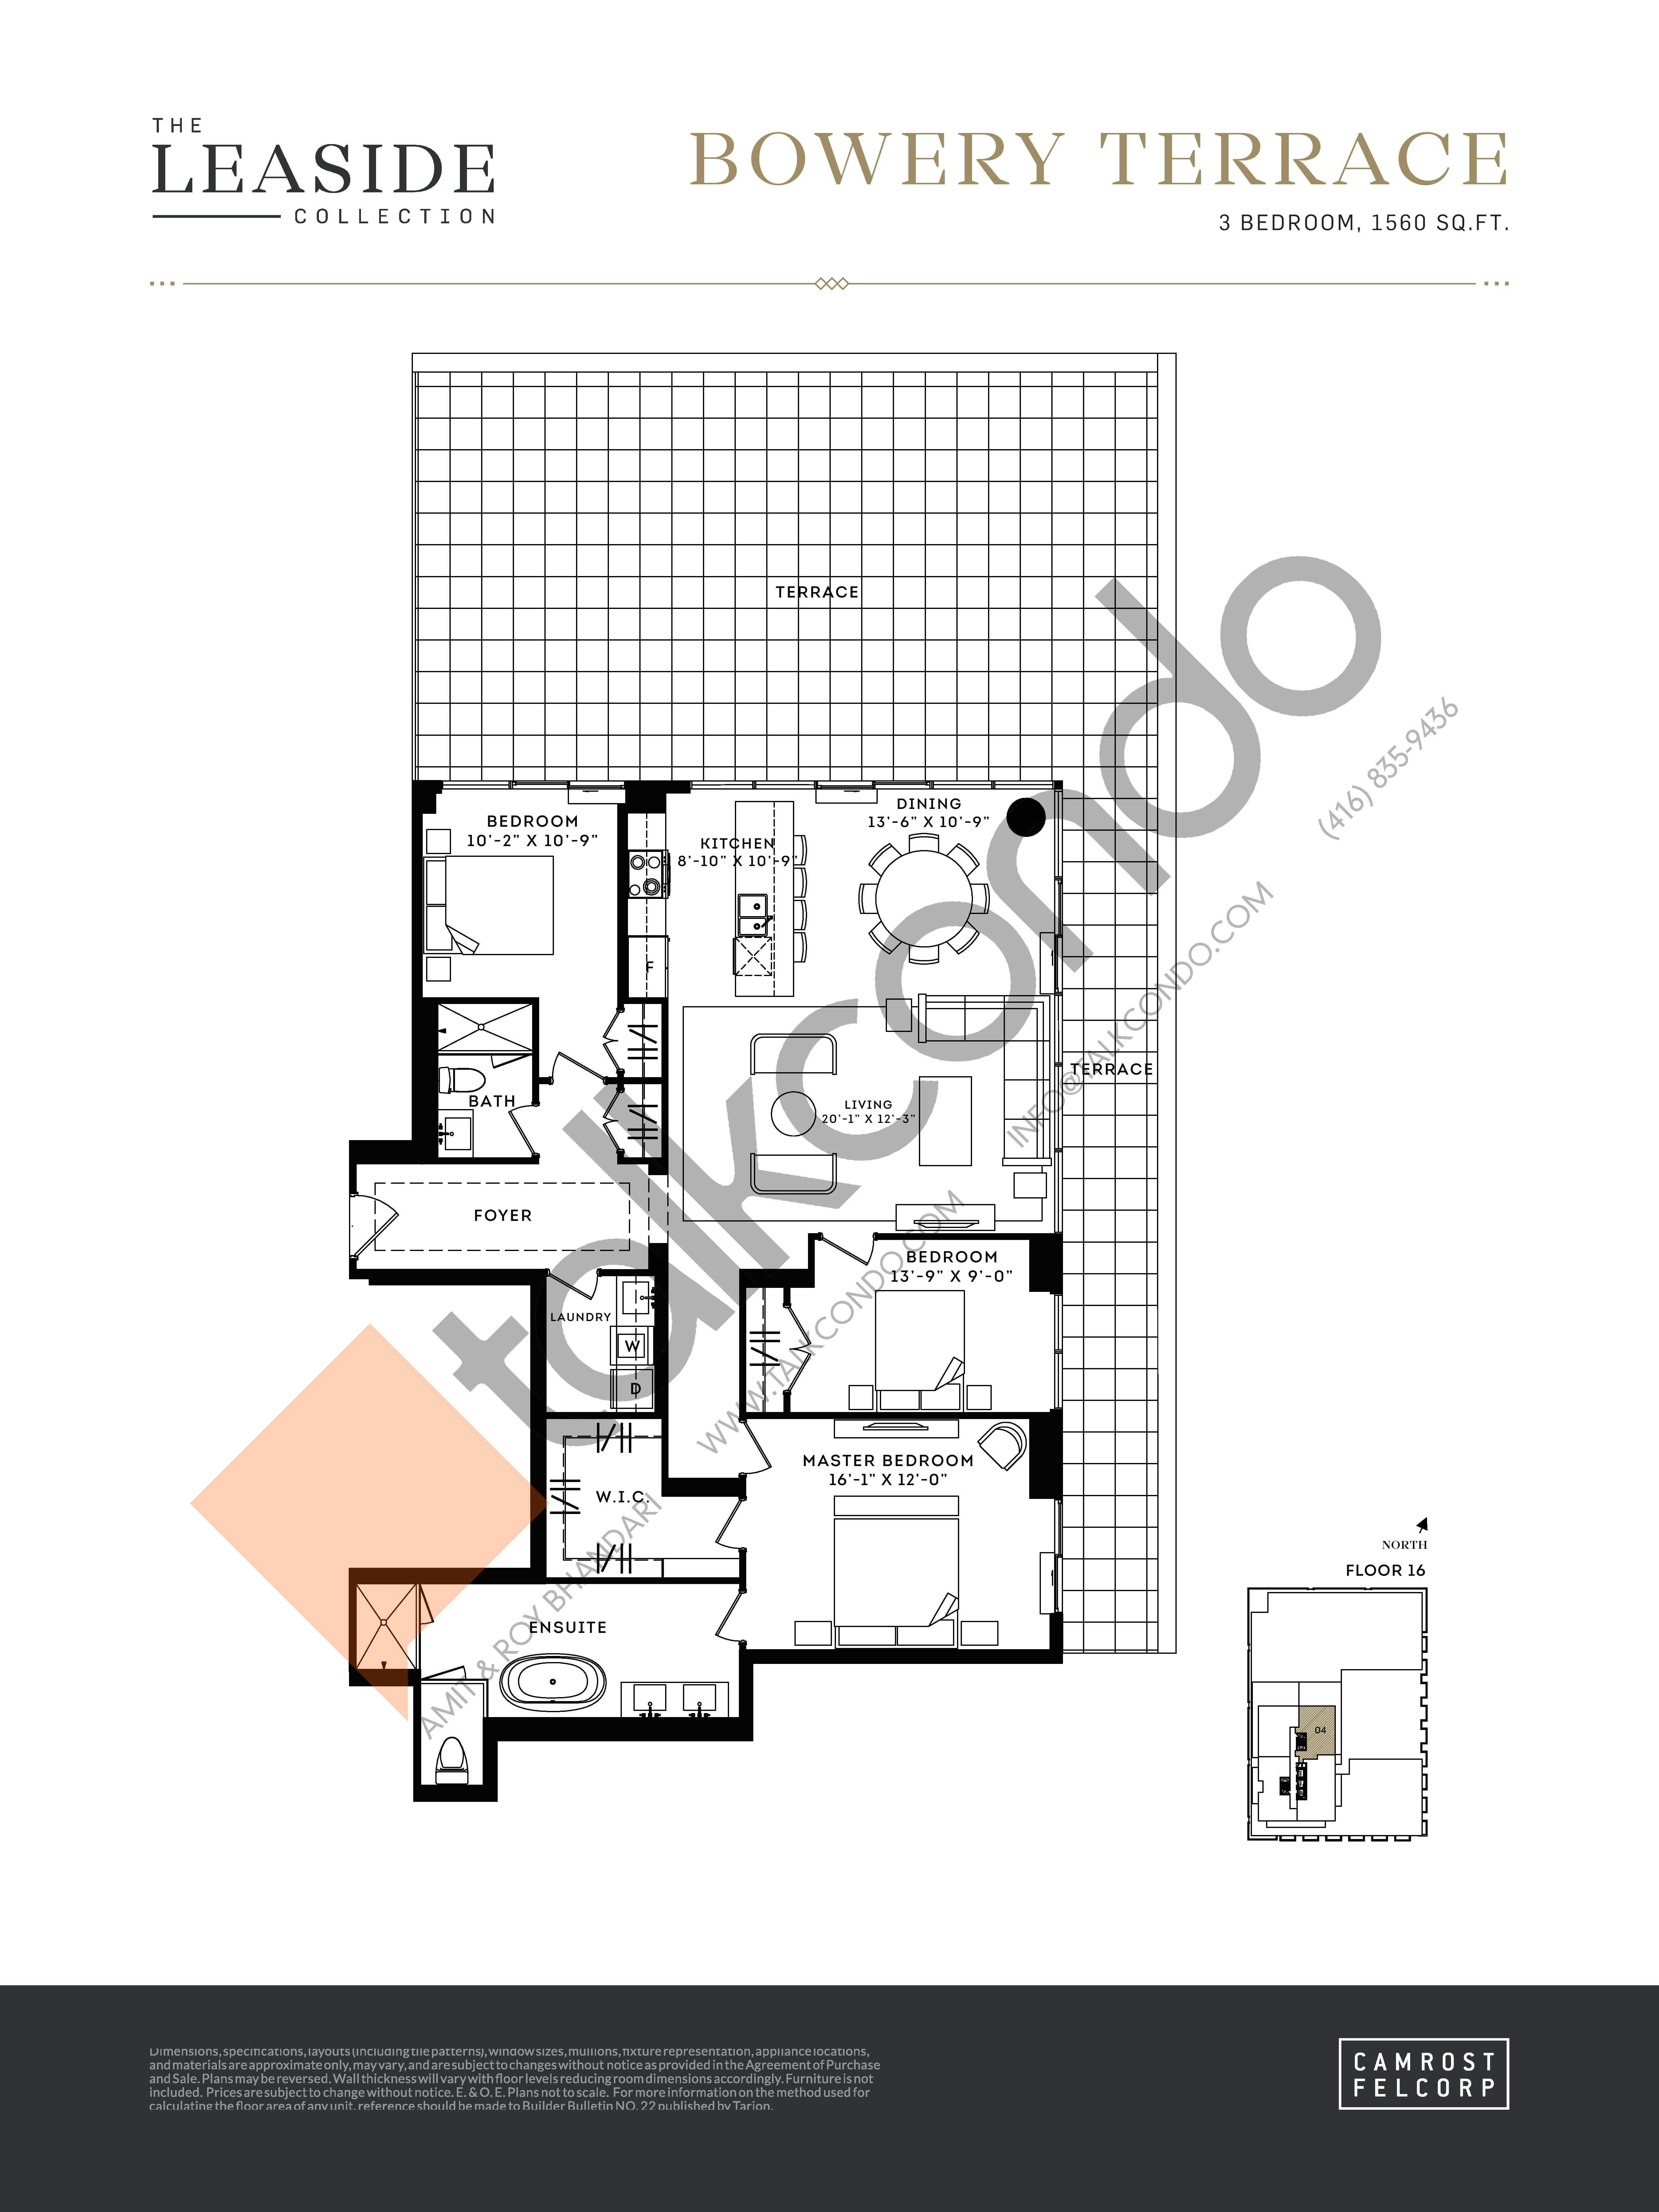 Bowery Terrace (The Leaside Collection) Floor Plan at Upper East Village Condos - 1560 sq.ft